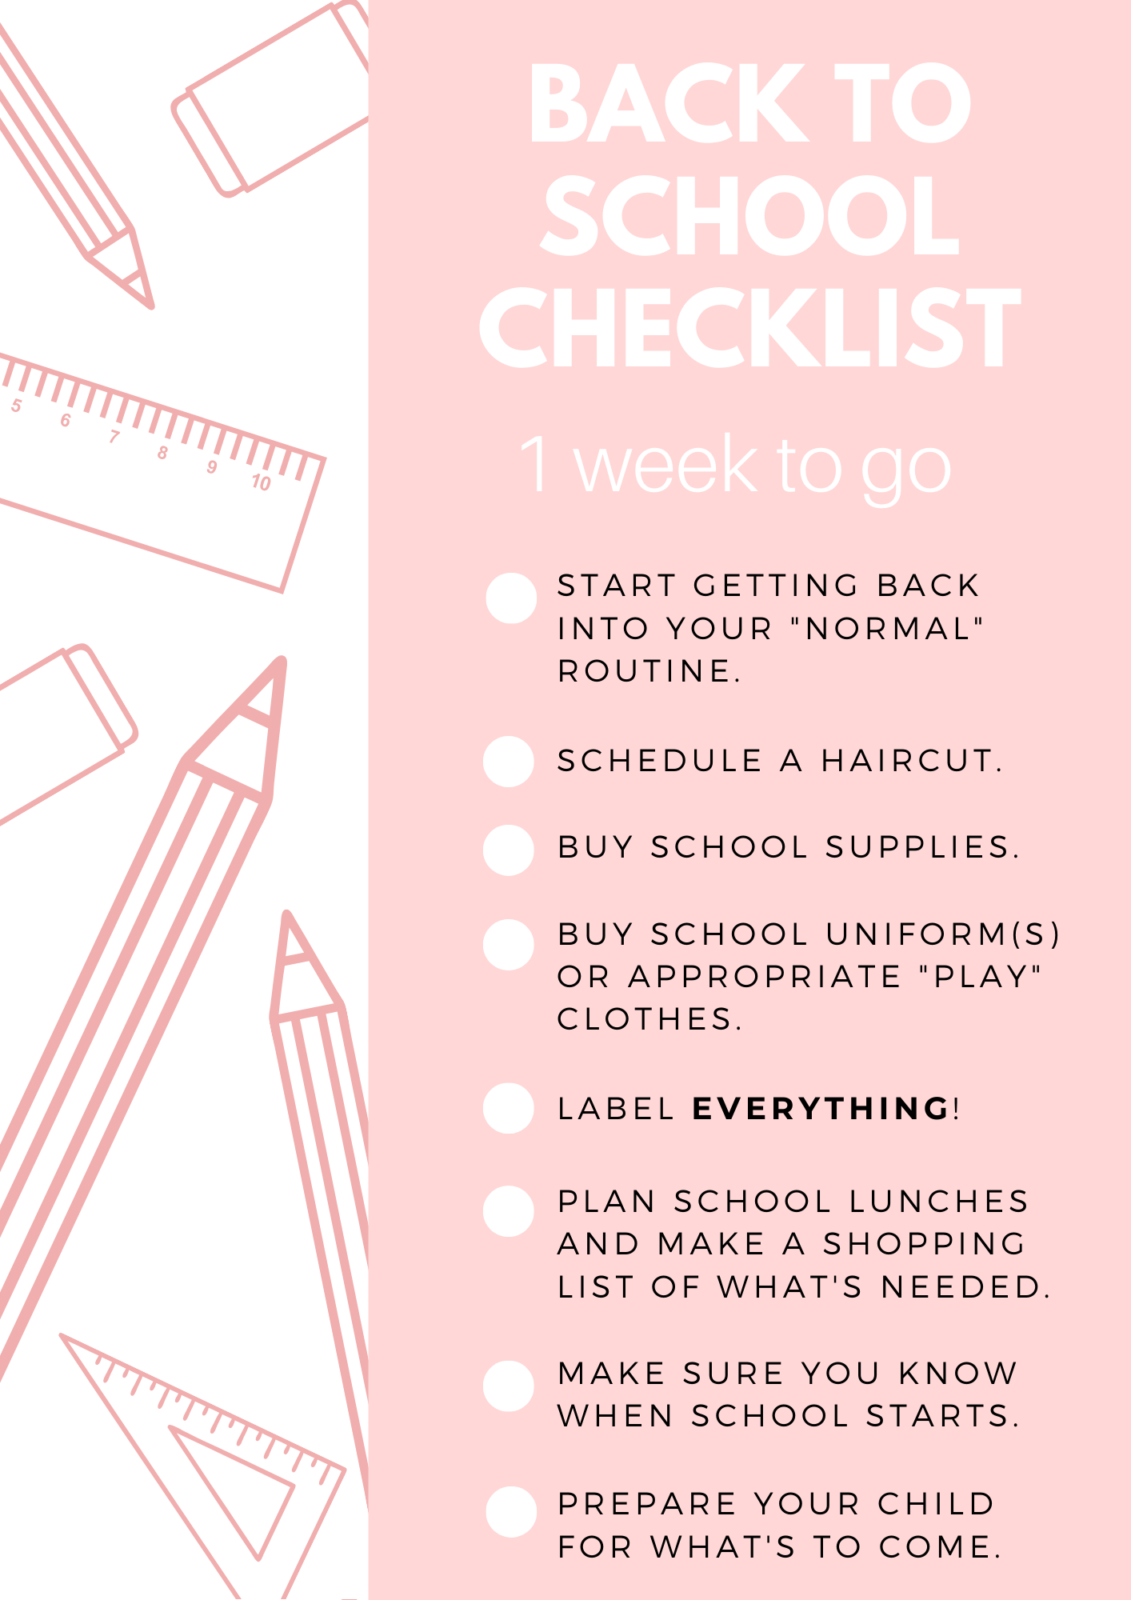 Back To School Checklist 1 Week To Go